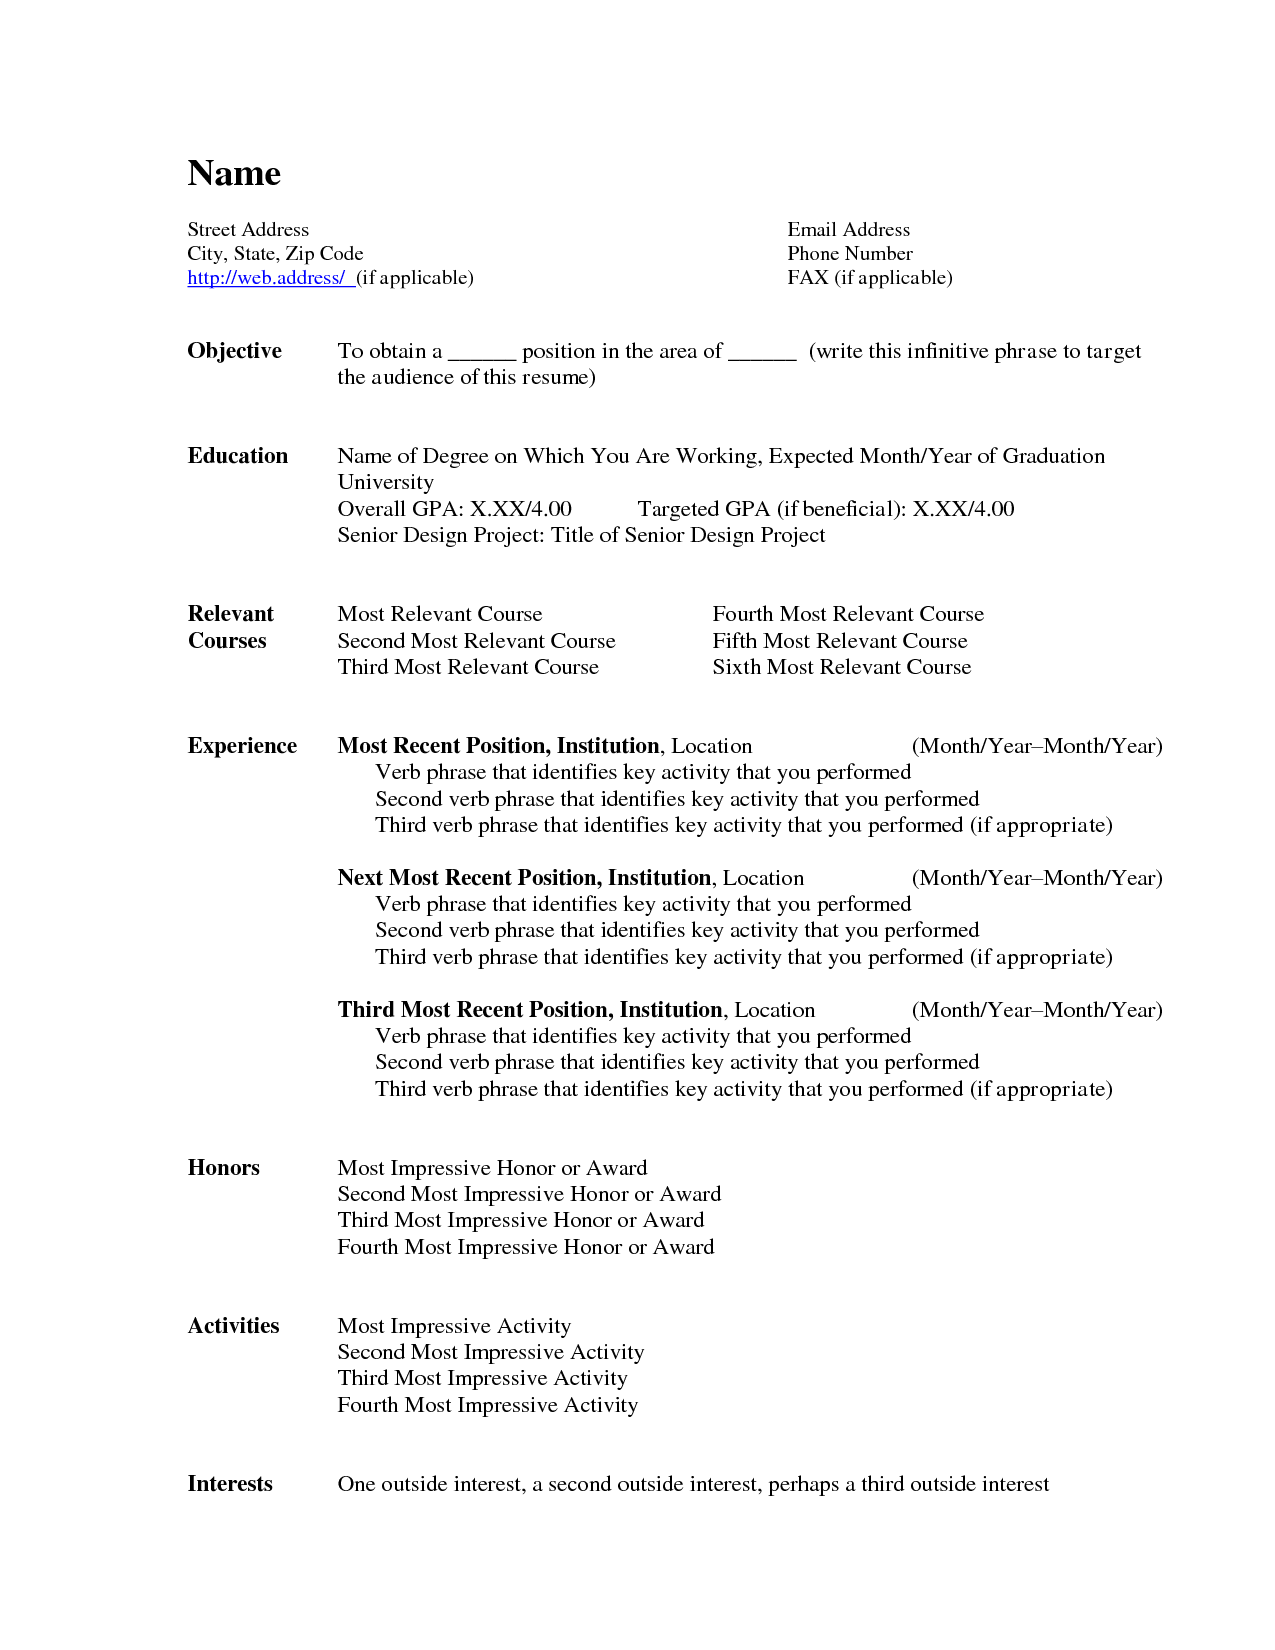 Microsoft Word Resume Template Resume Builder Resume Resume